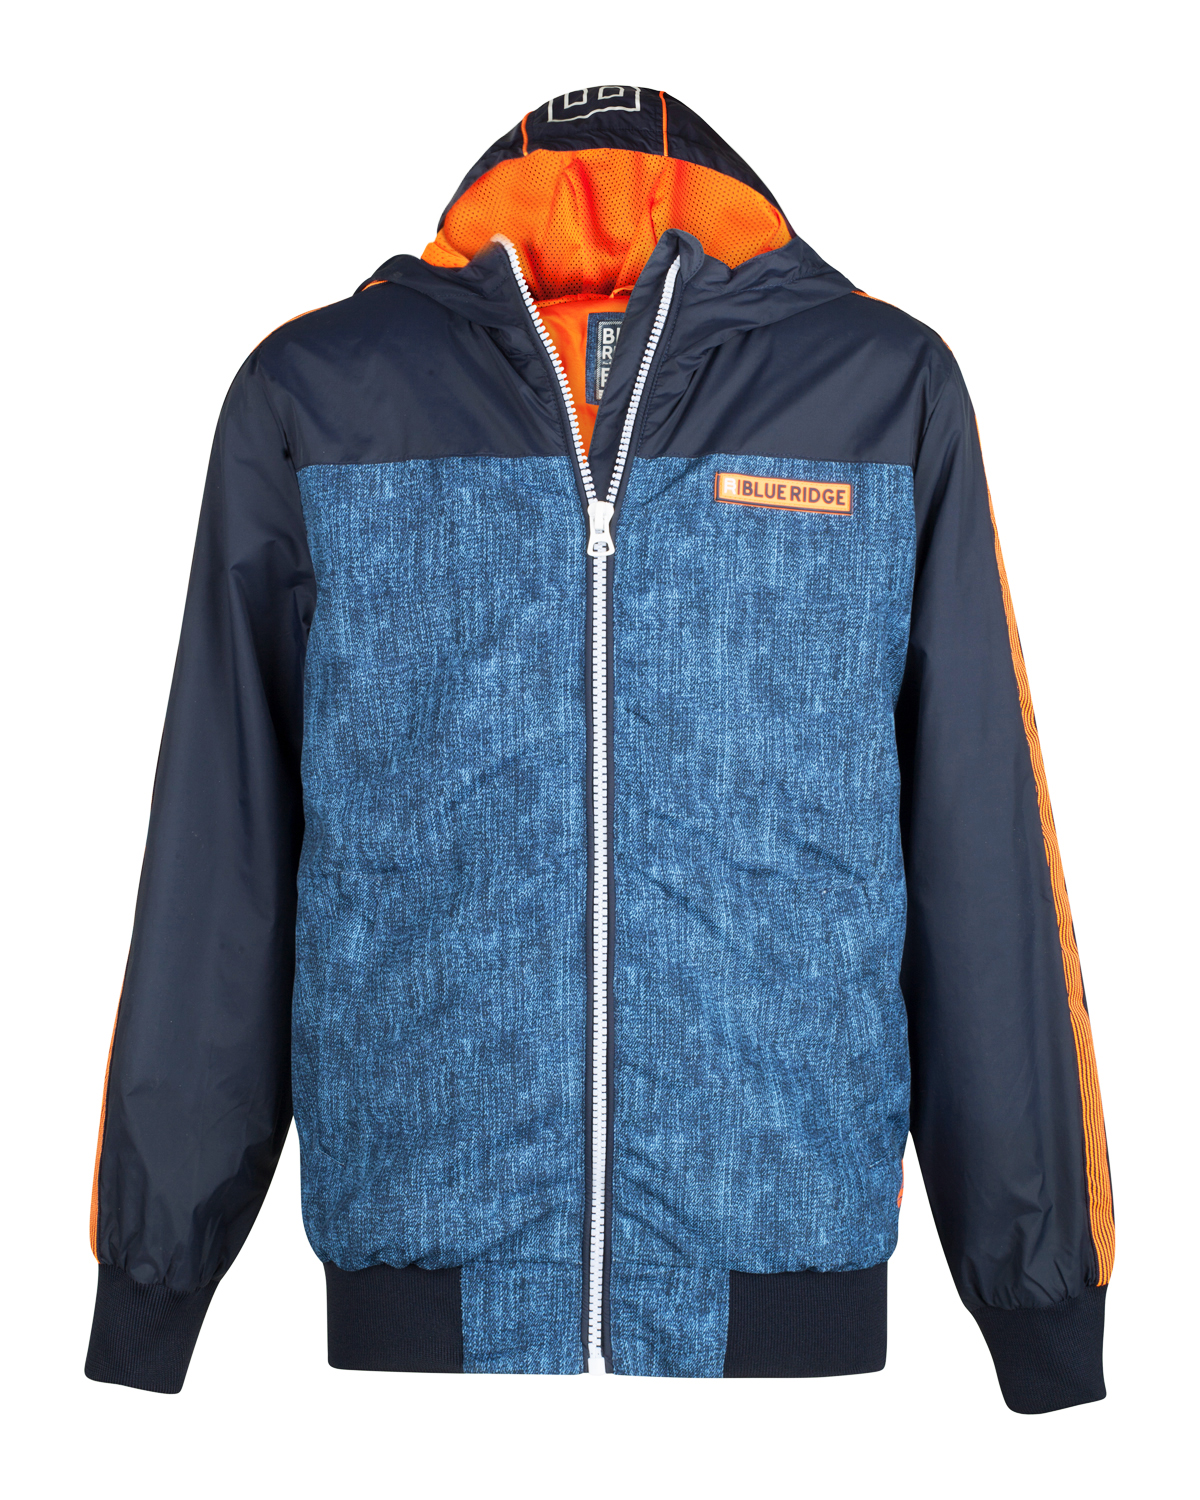 Jongens blue ridge jacket